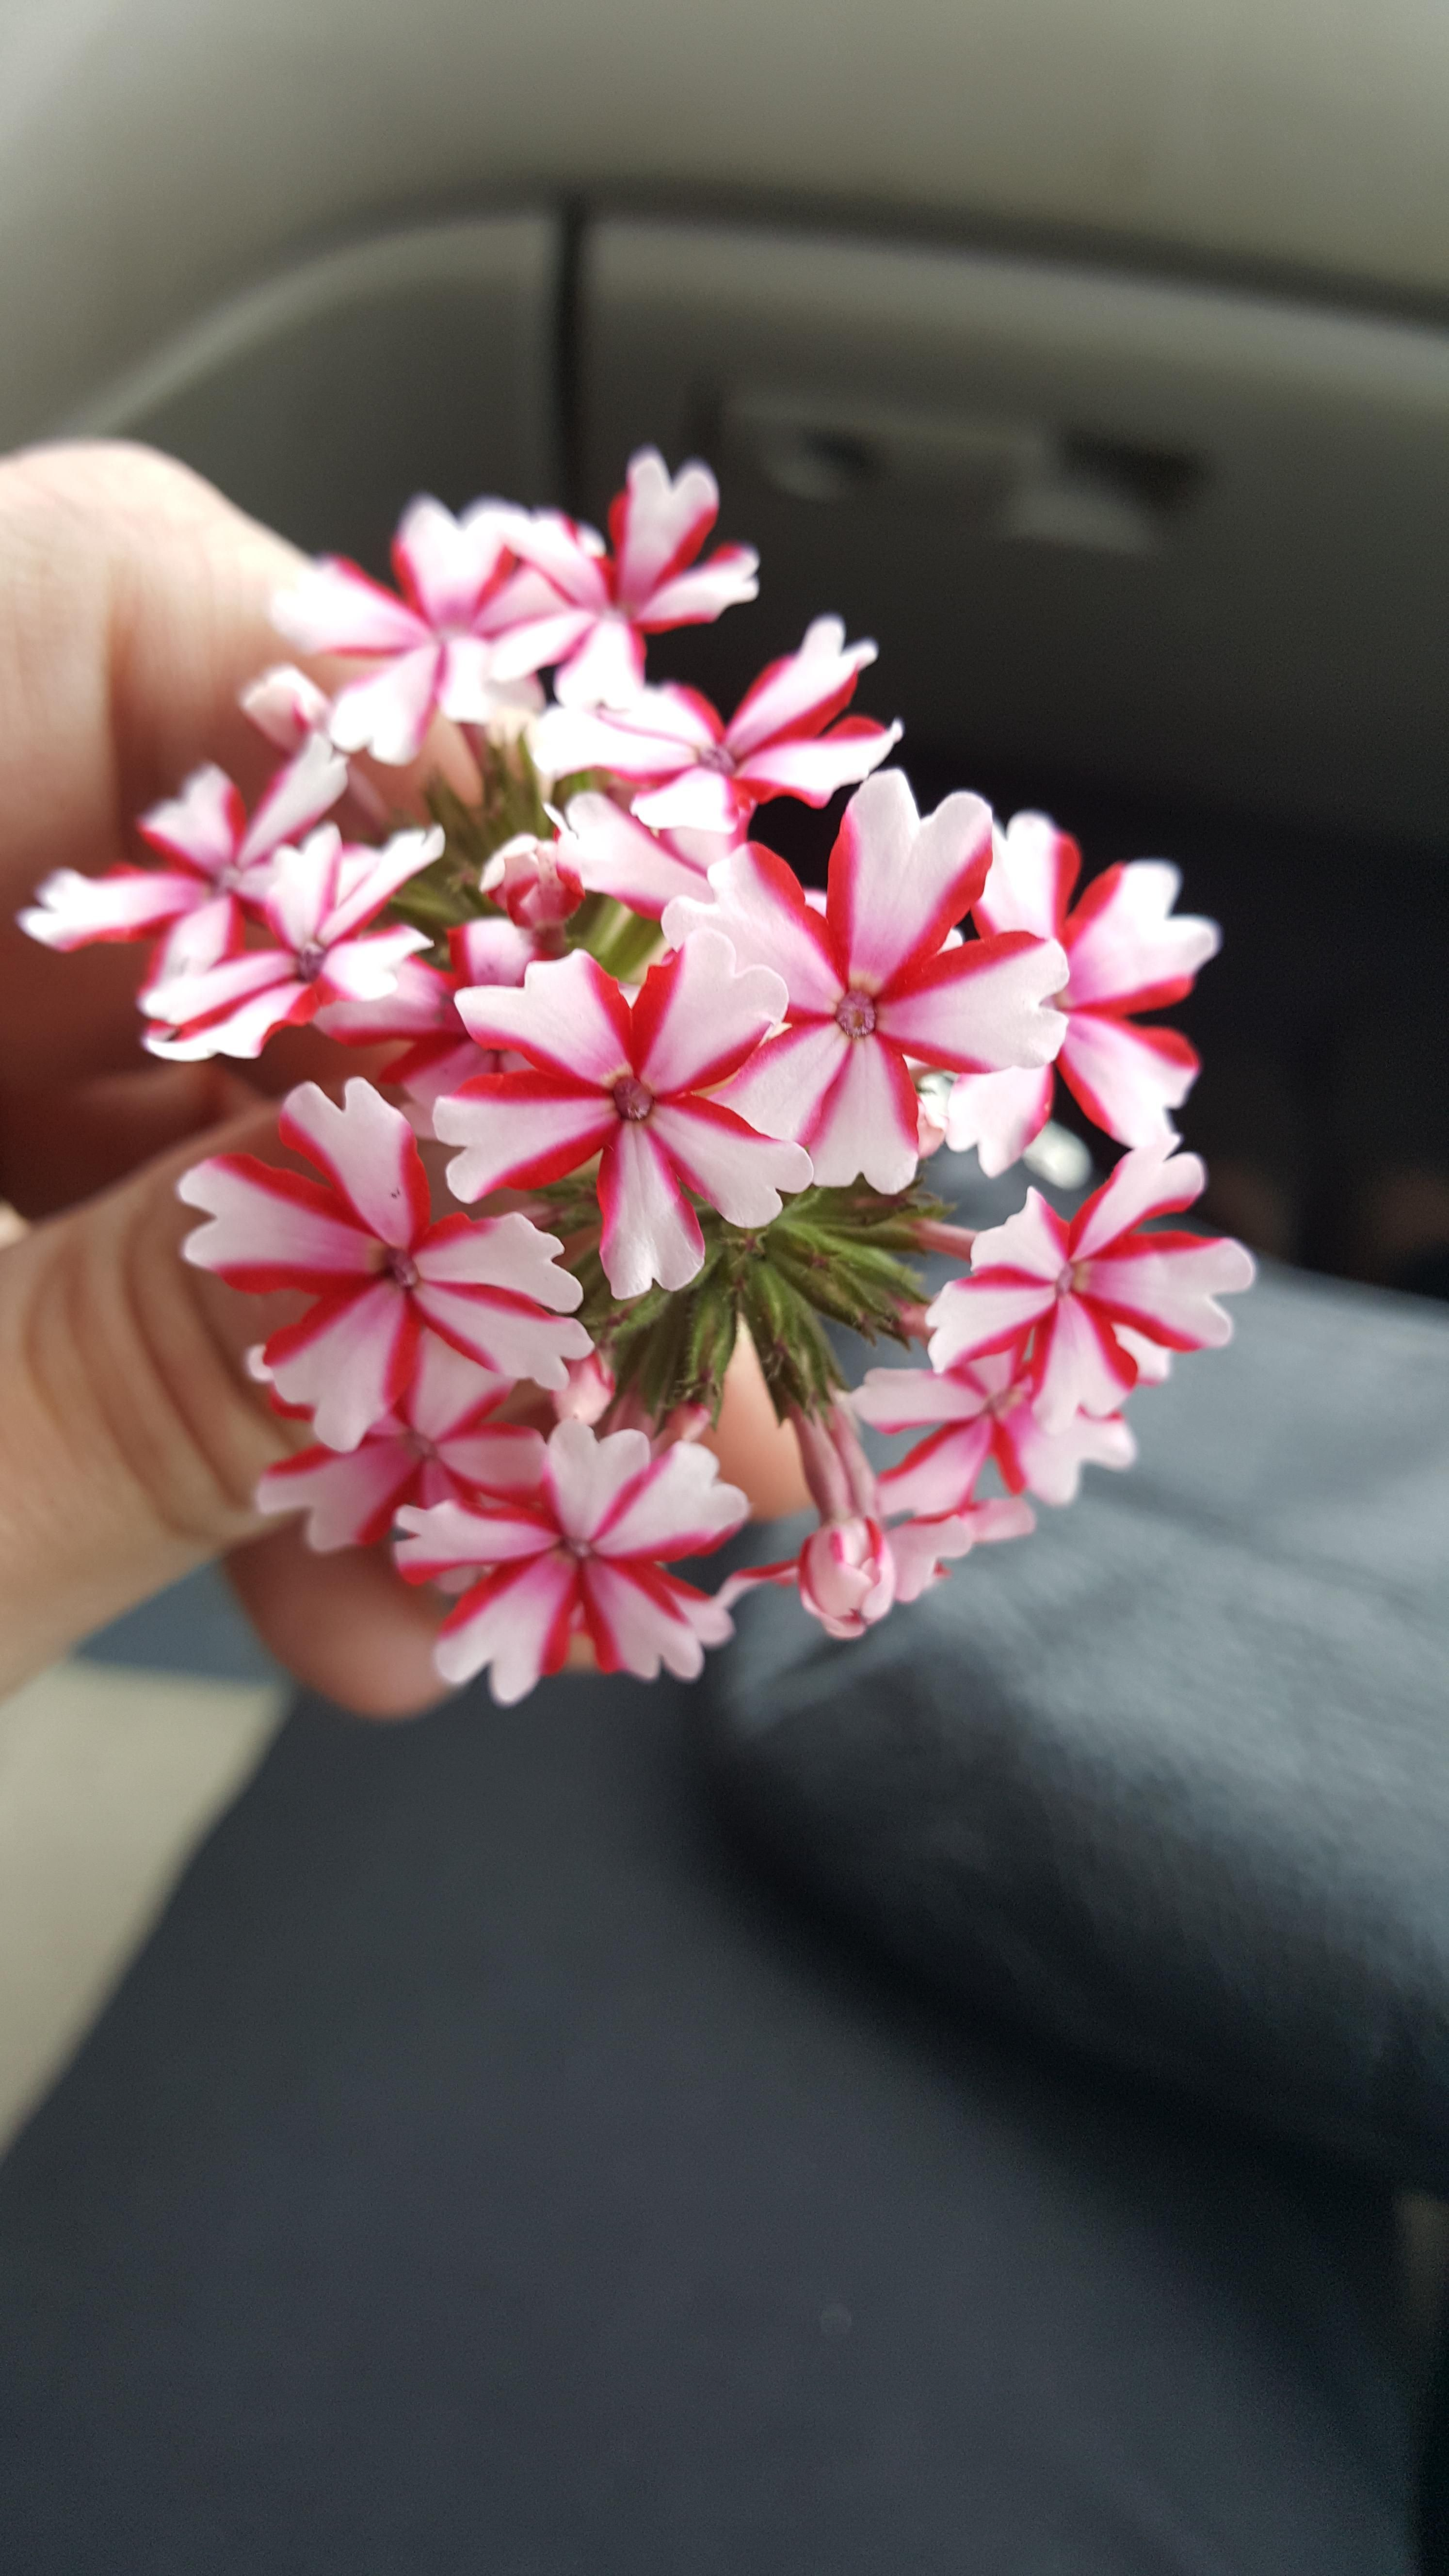 Can Anyone Tell Me What These Cute Little Flowers Are I Believe